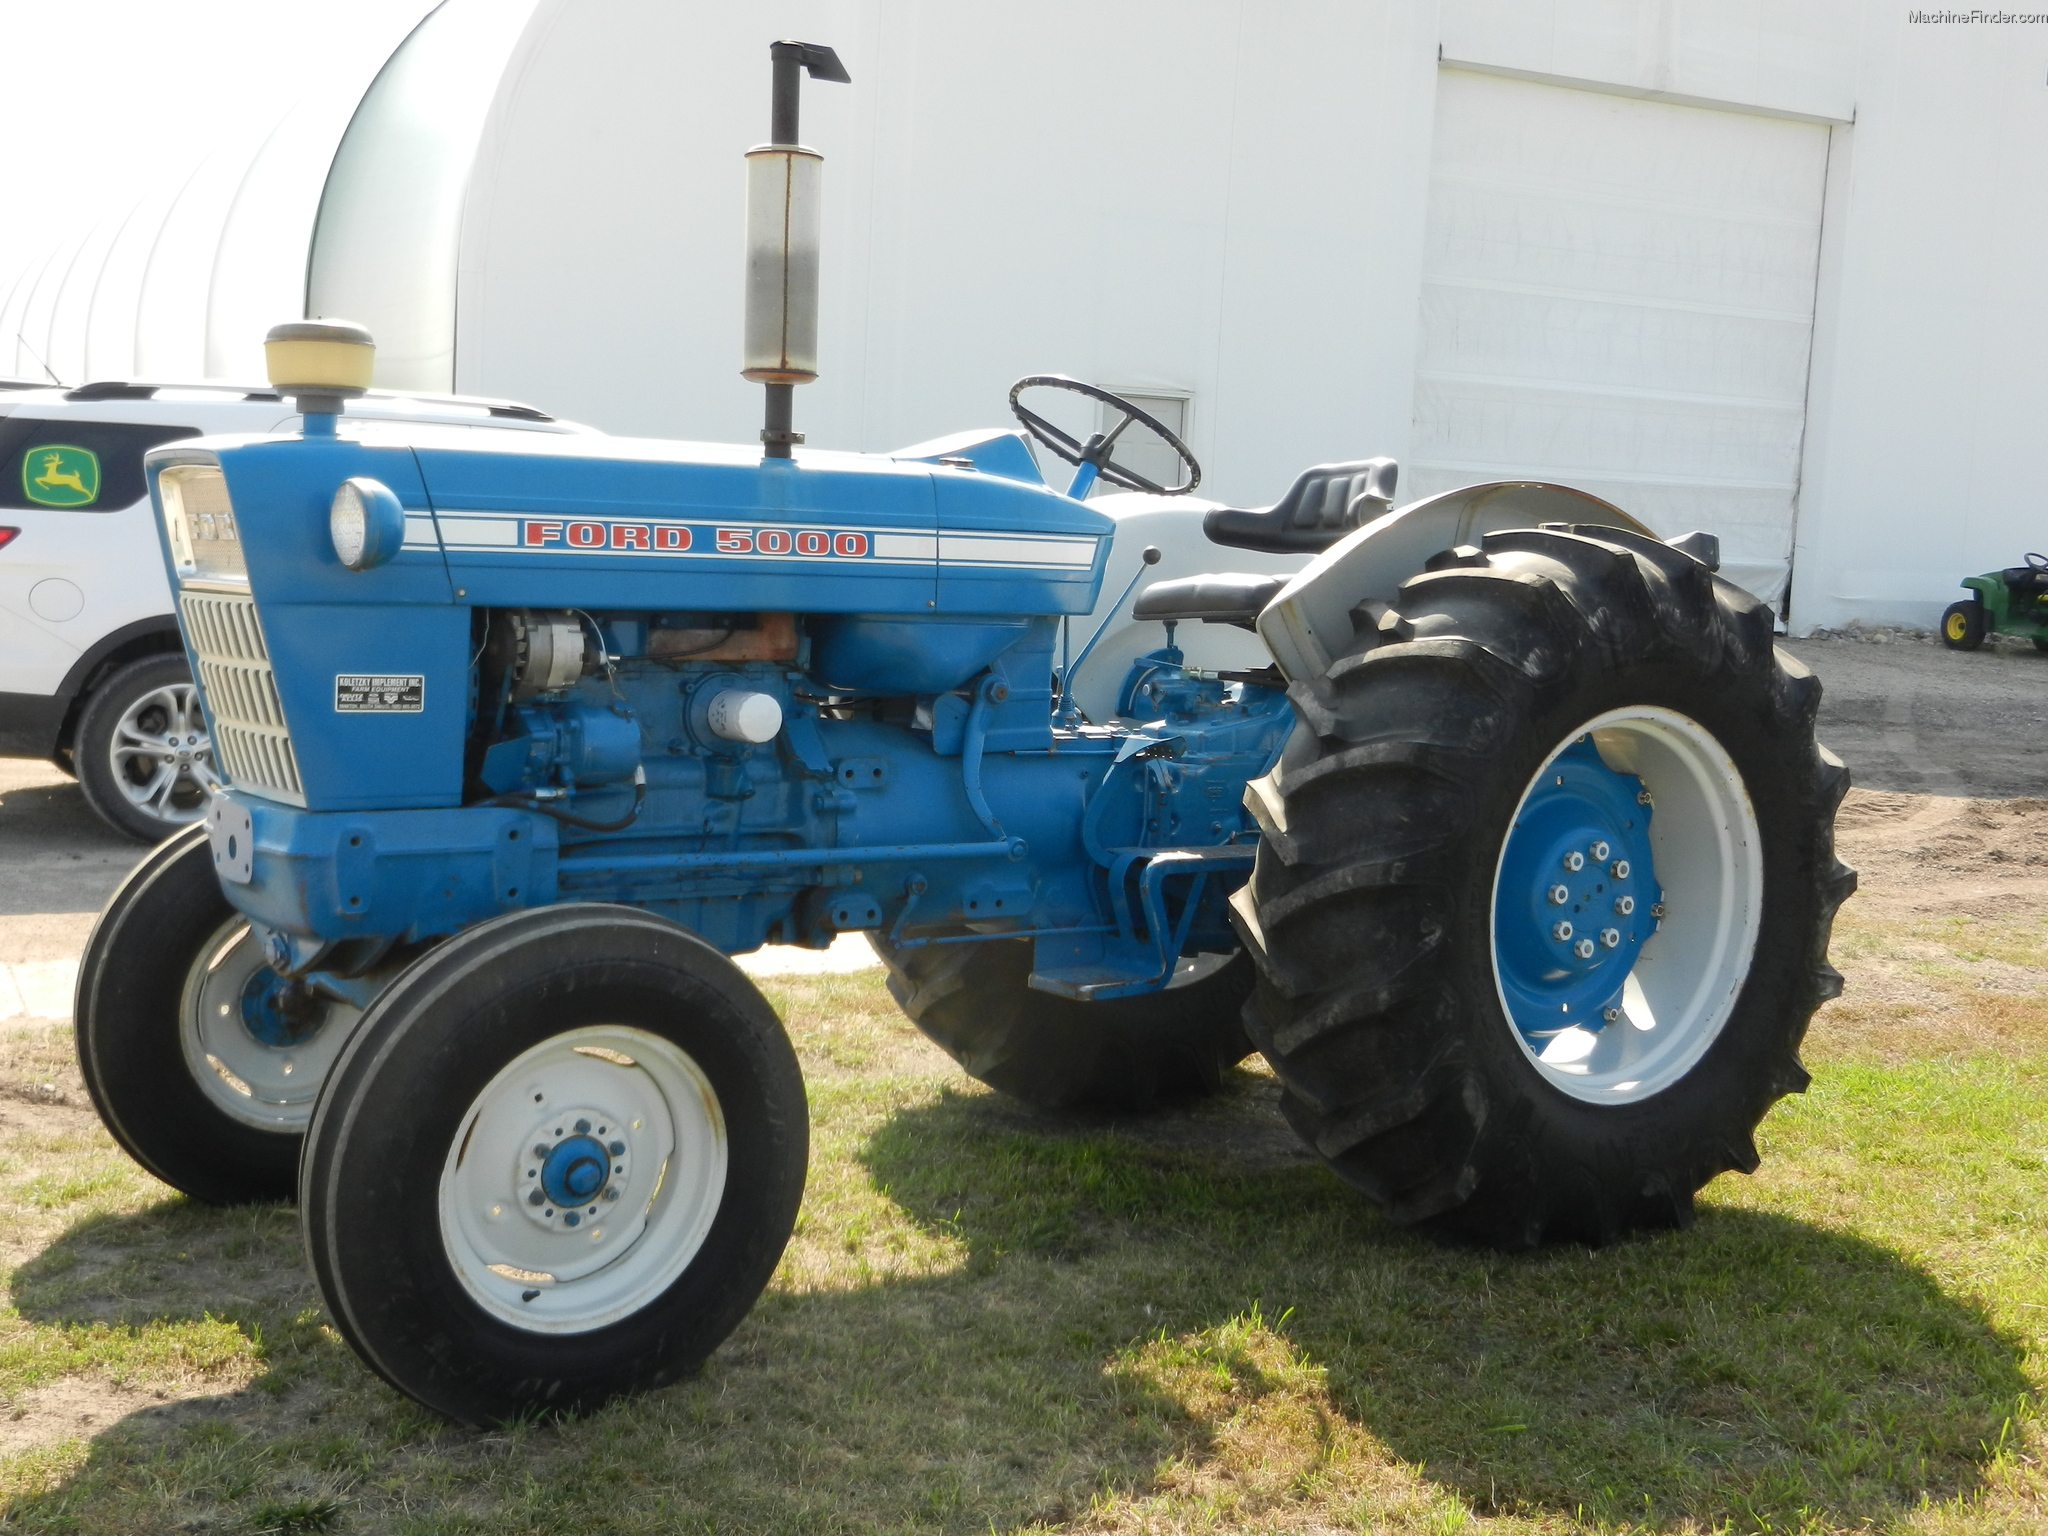 Ford Tractor Company : Ford row crop tractor